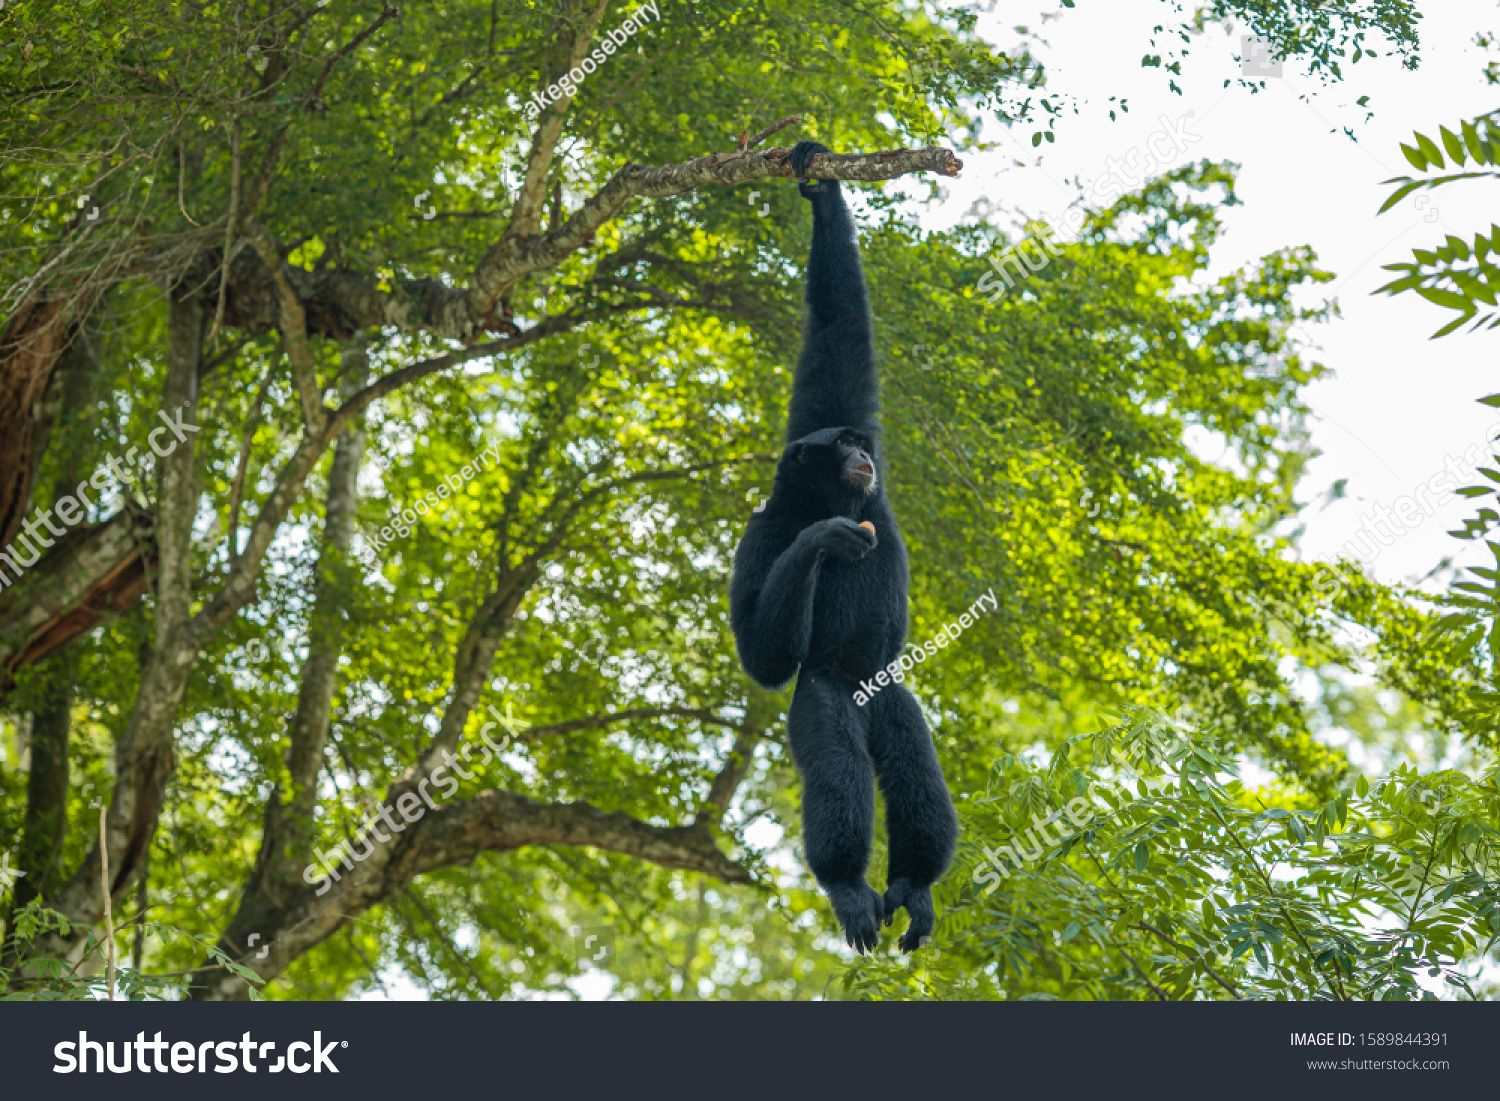 Gibbons On Tree White Hand Gibbon Hanging From The Tree Branch White Handed Gibbon Is Jumping In The Forest Animal In The W In 2020 Gibbon Animals Wild Stock Photos